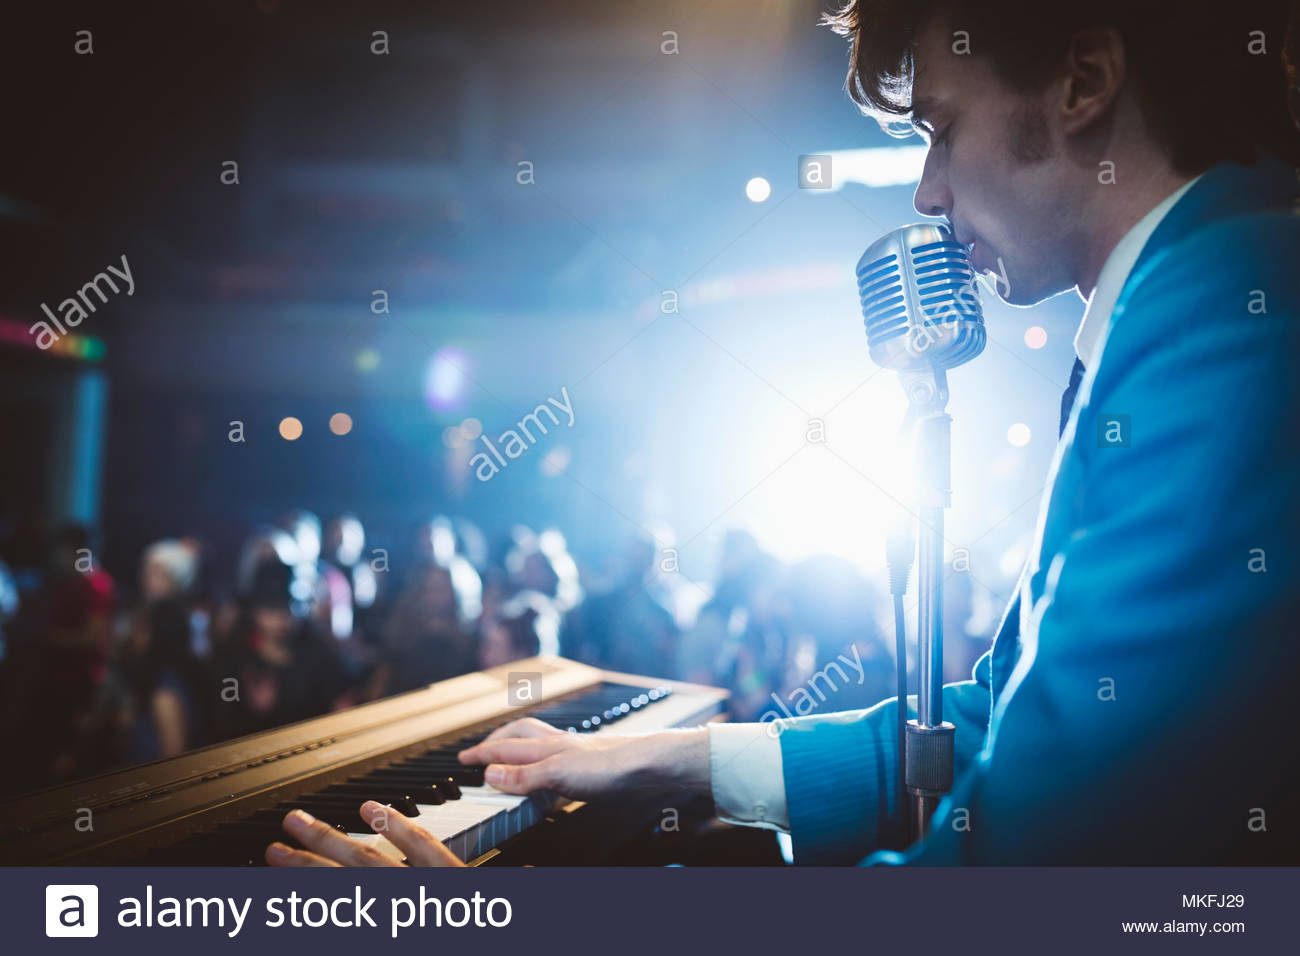 Rockabilly musician playing electric piano and singing into microphone on stage at music concert - Stock Image